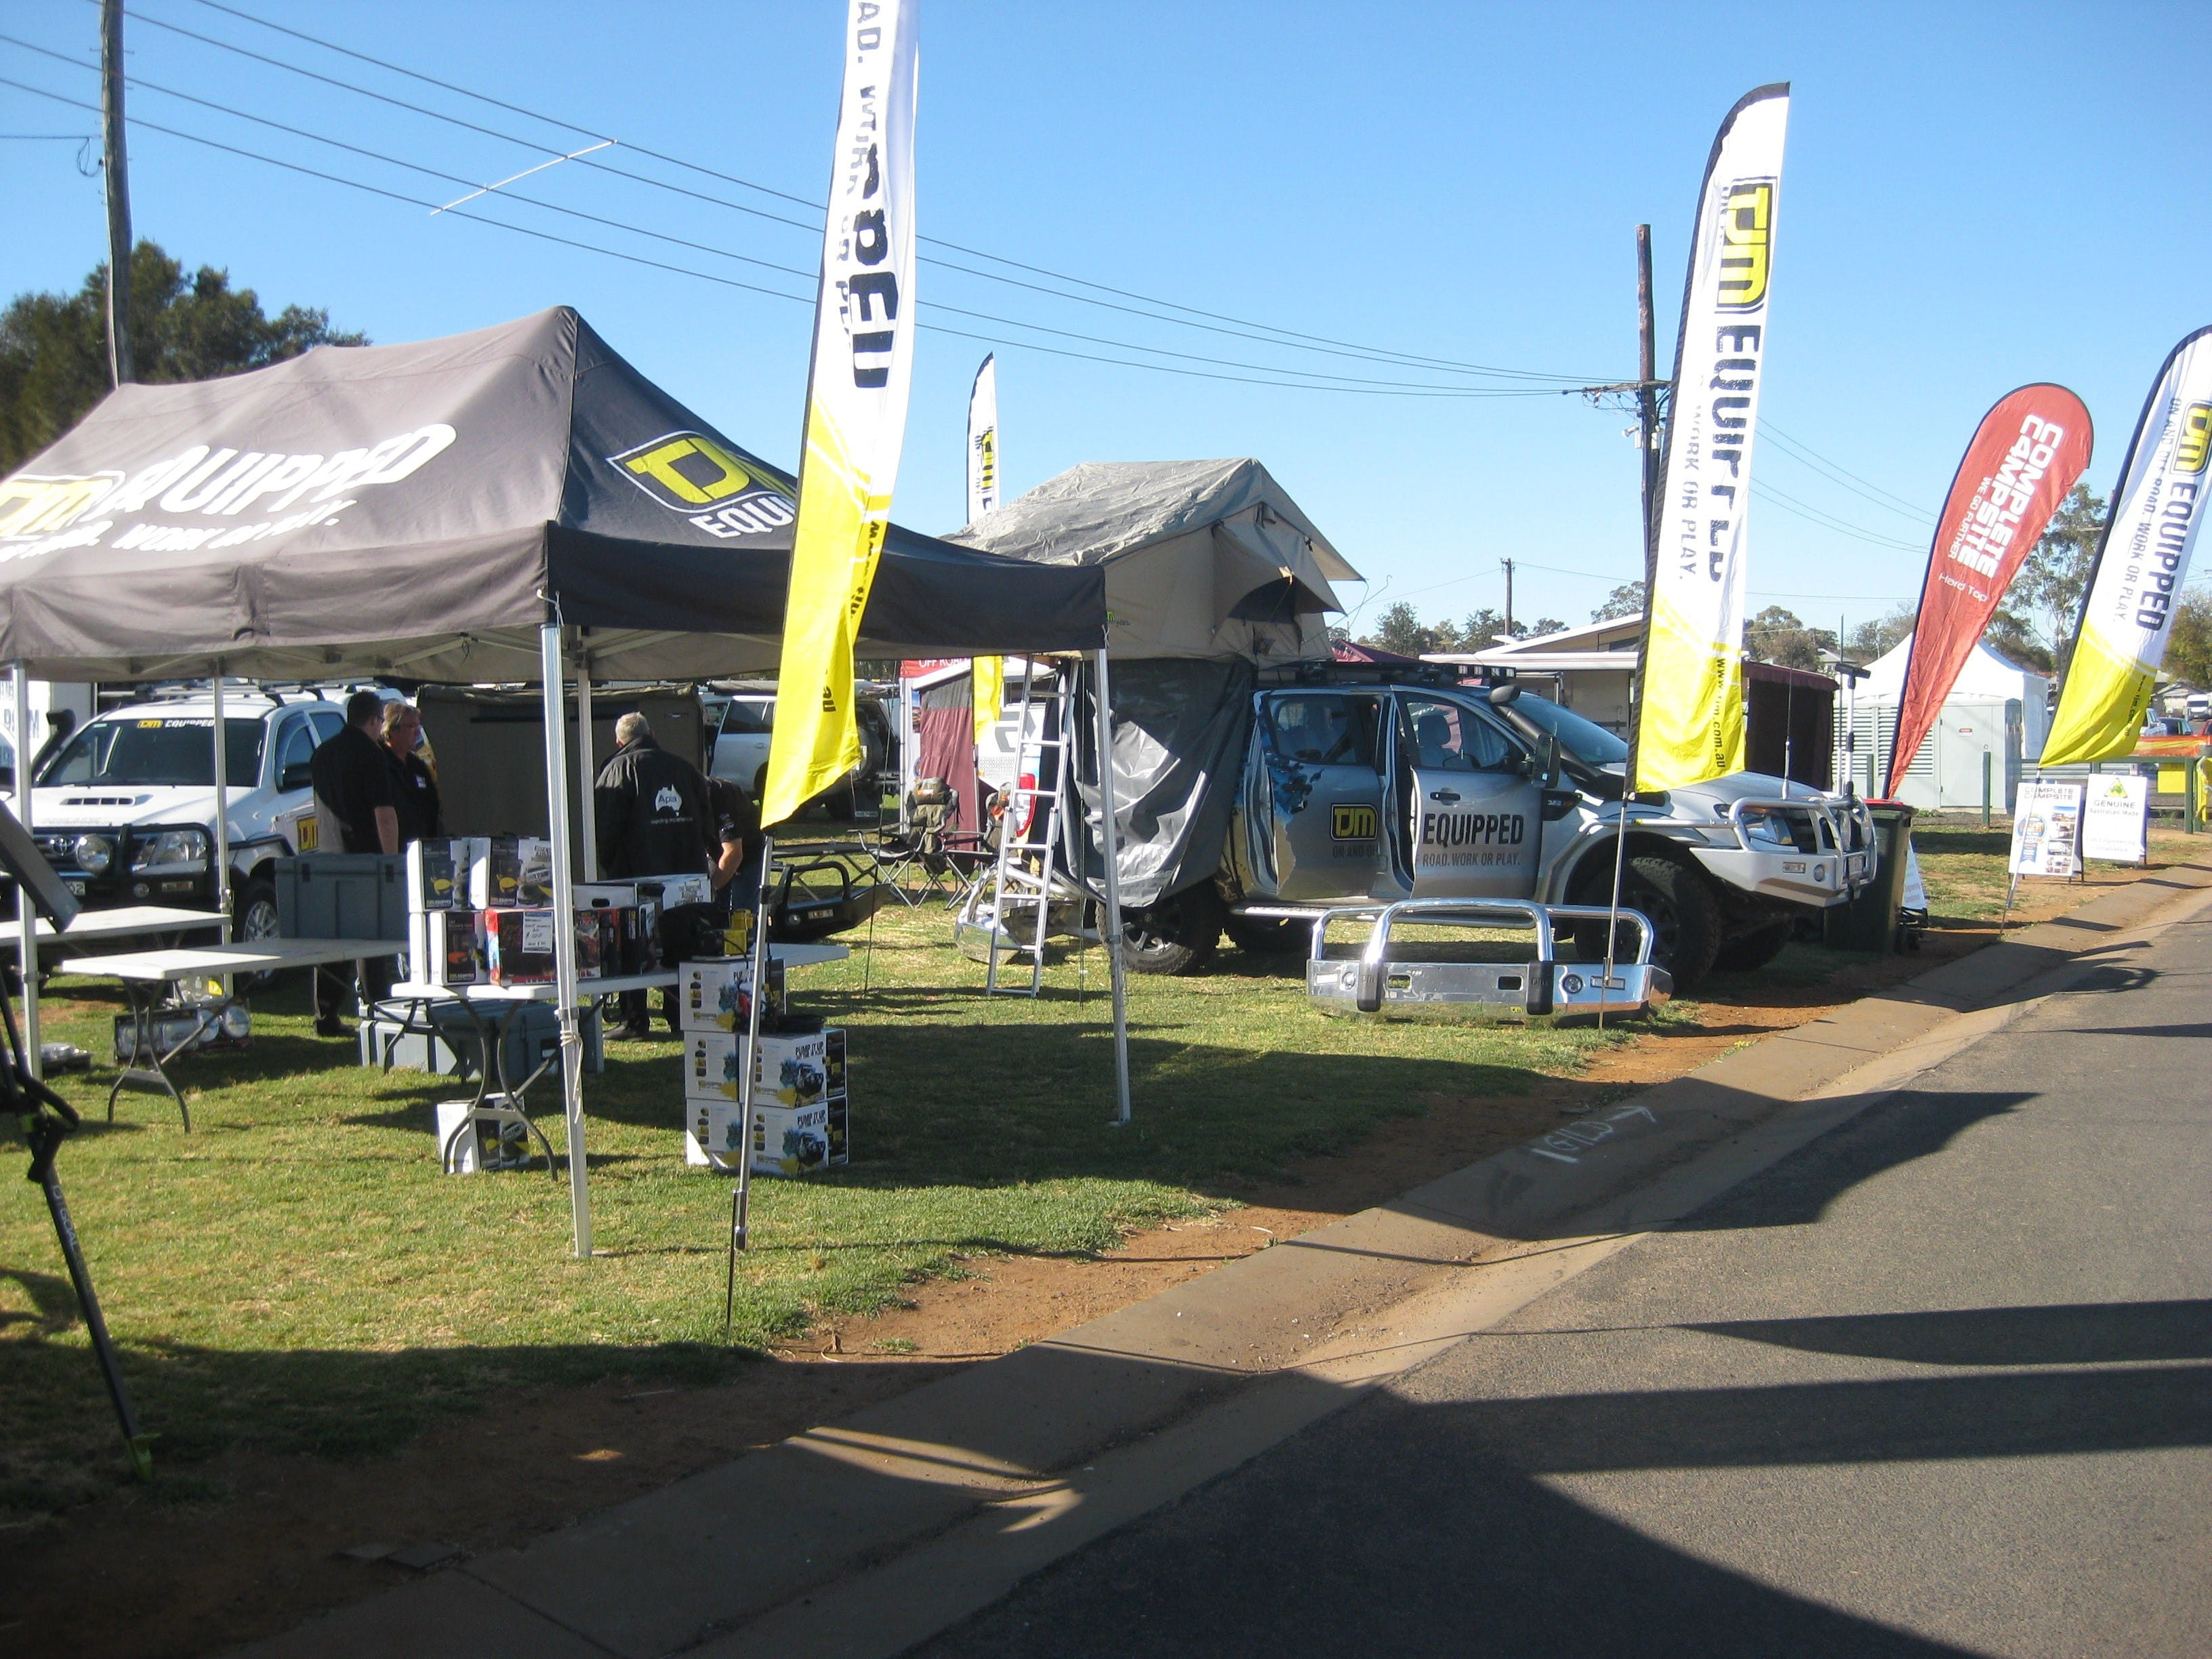 Orana Caravan Camping 4WD Fish and Boat Show - Accommodation Perth